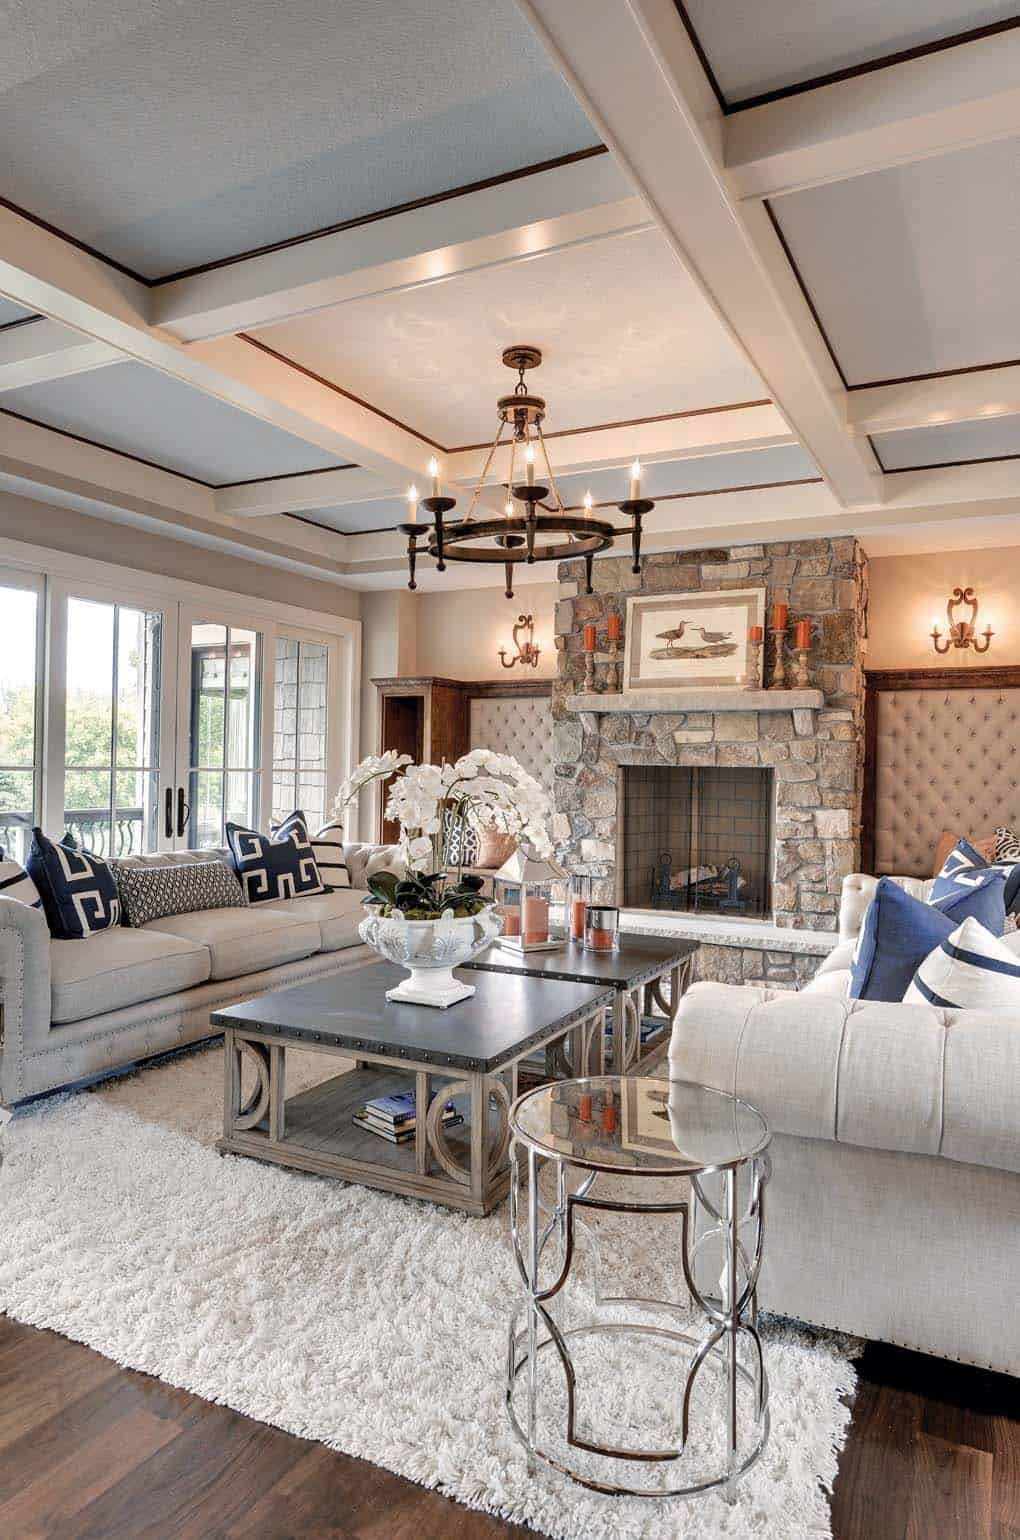 Florida Living Room Design Ideas: 38 Elegant Living Rooms That Are Brilliantly Designed